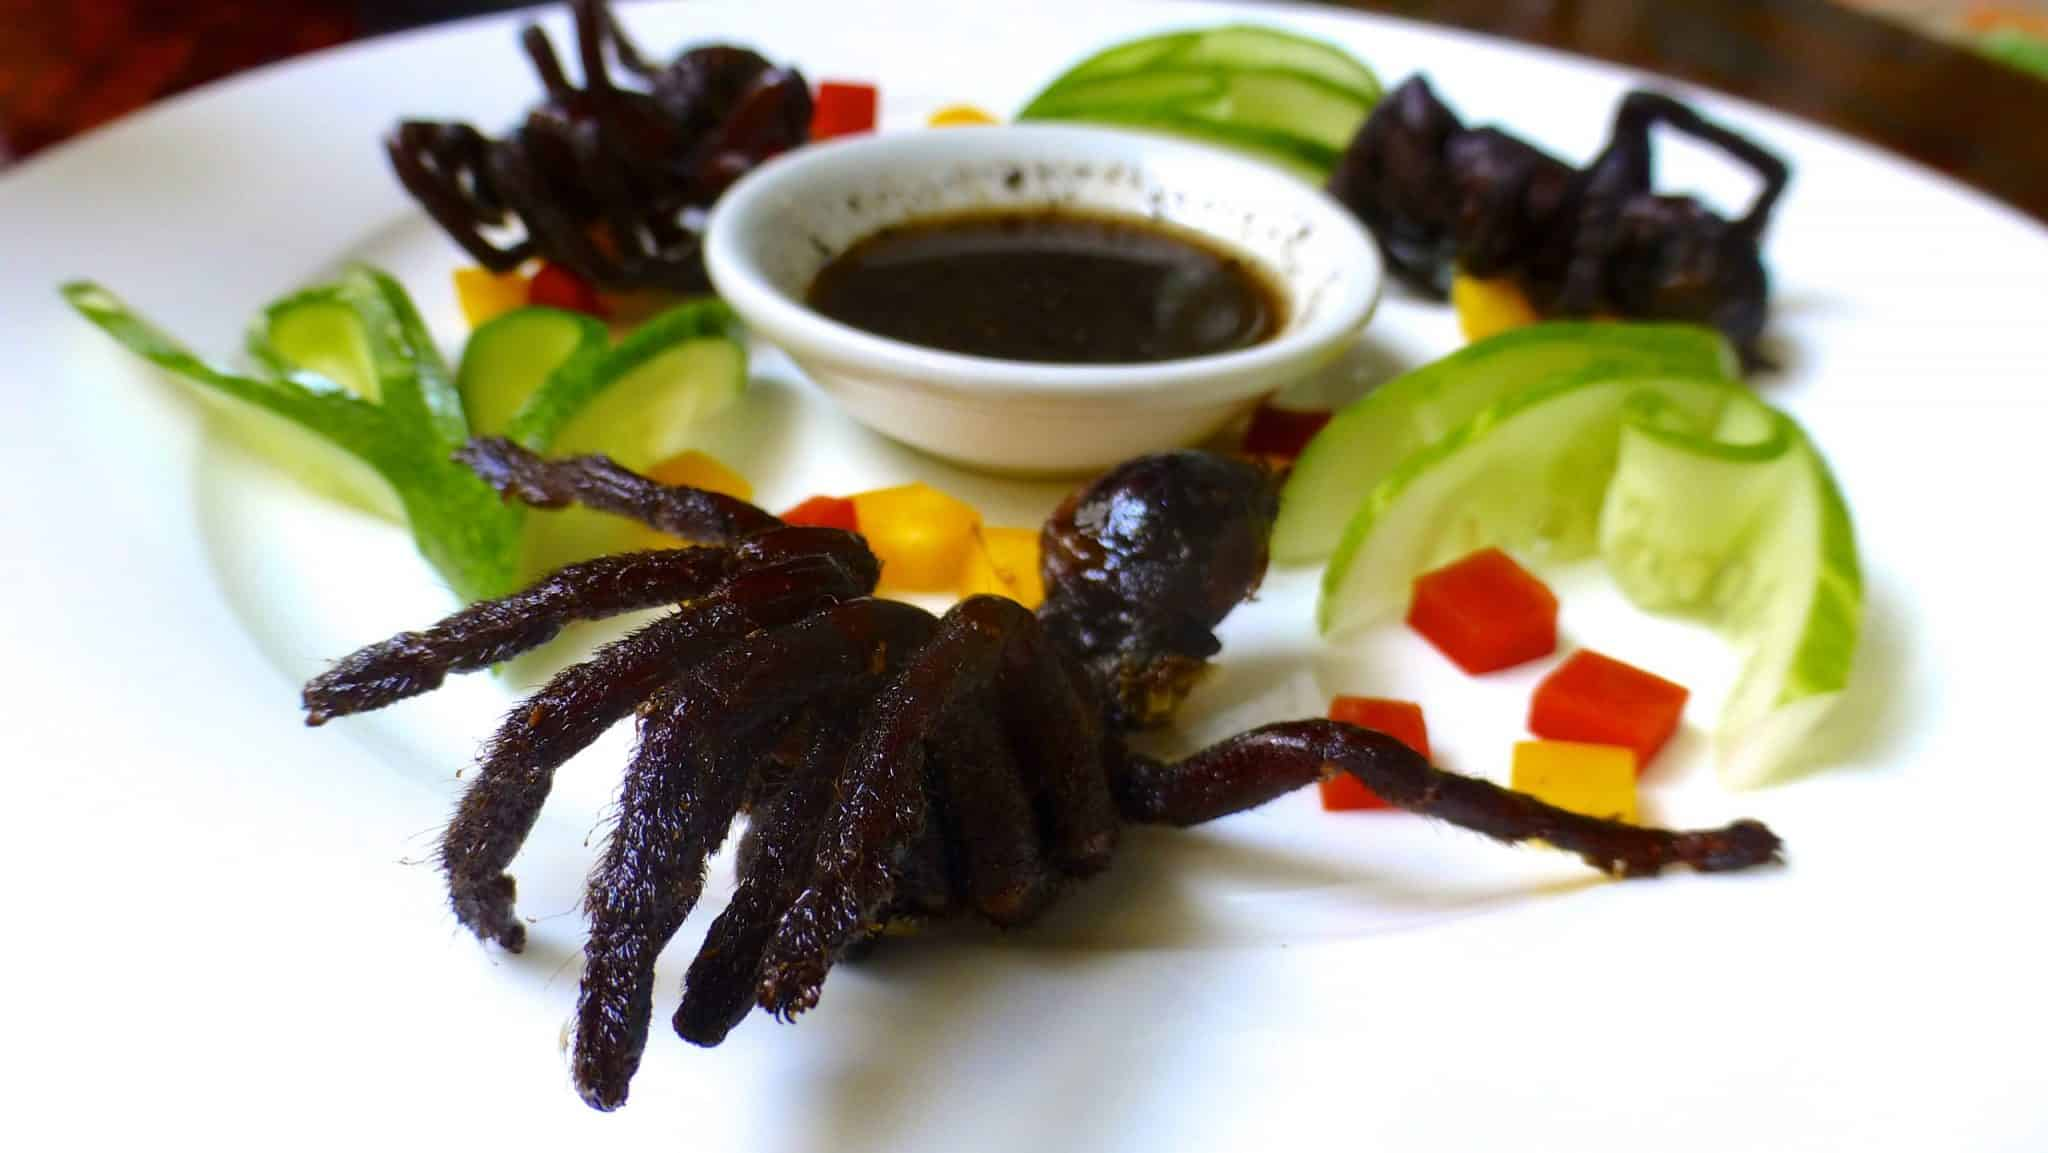 Would you try deep fried tarantula if you had the chance? I did! It is a popular snack in Cambodia. Here is how it went...